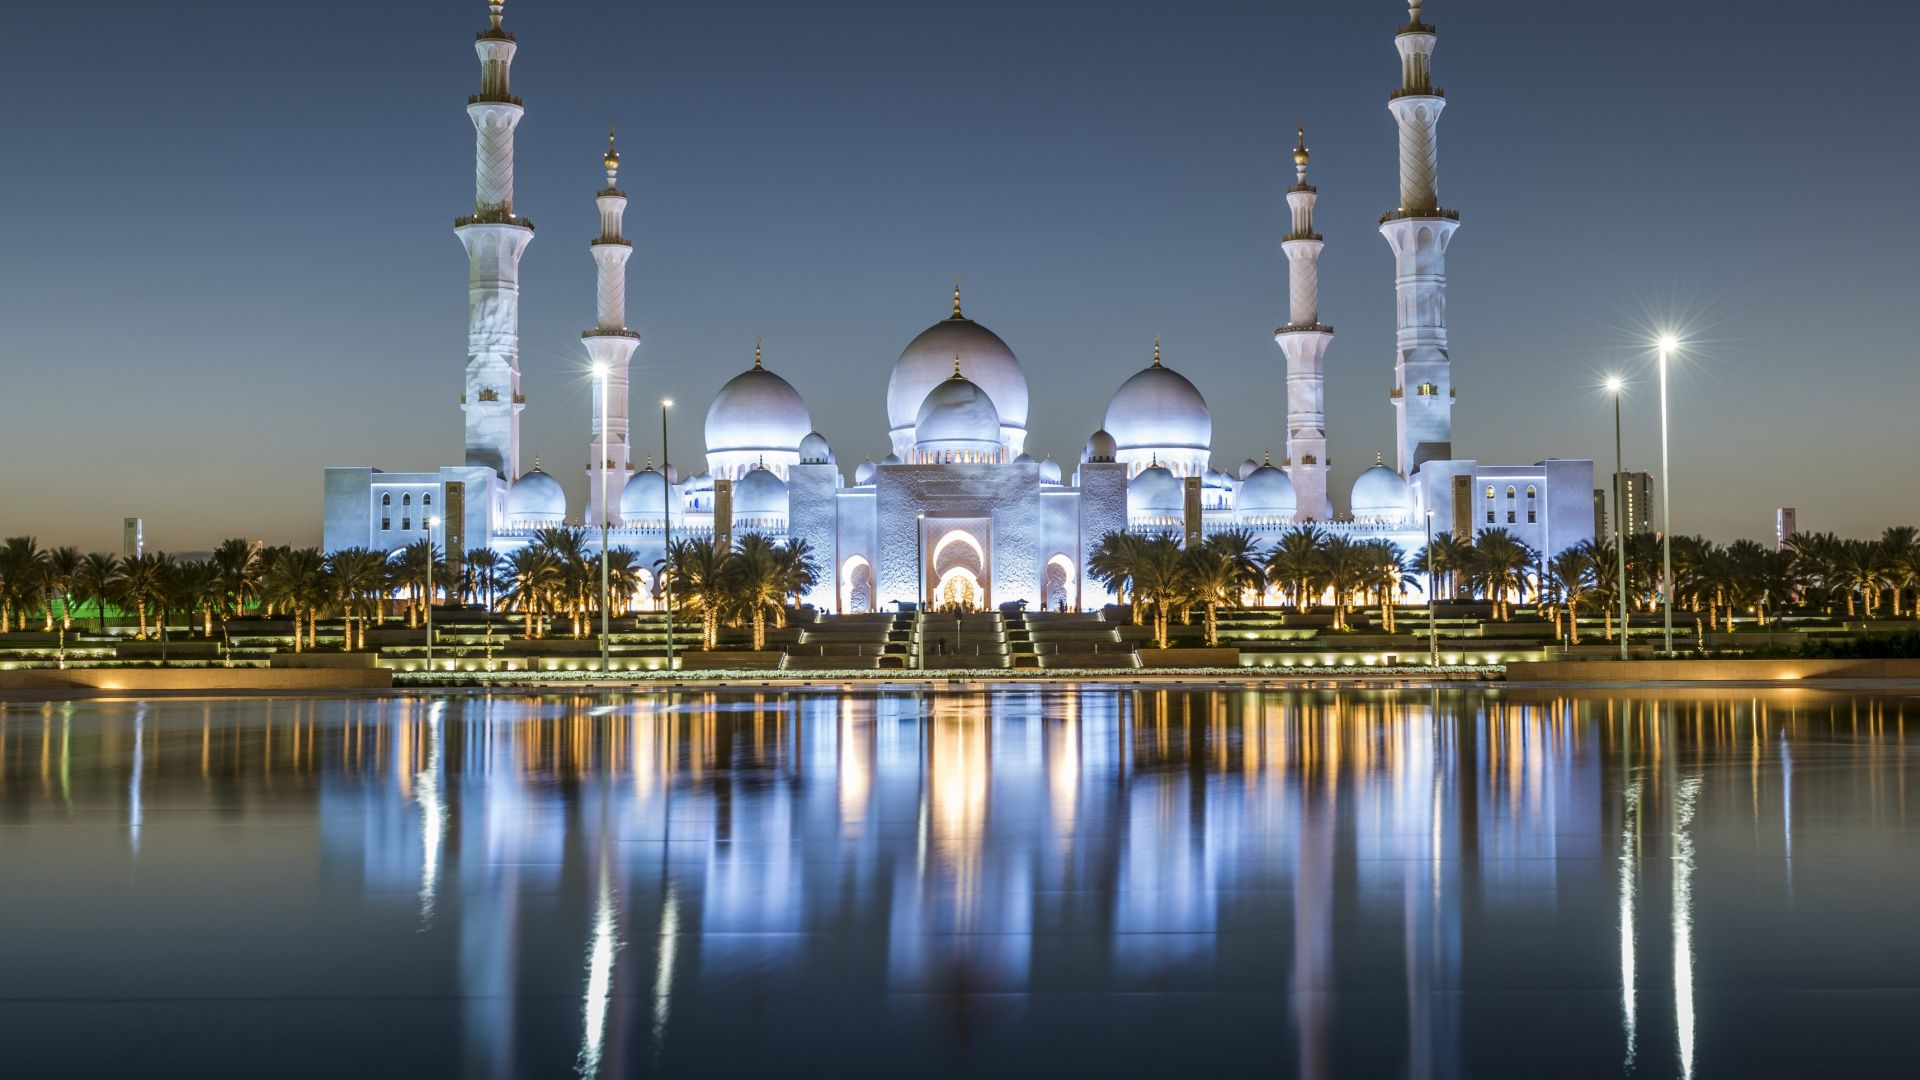 Wallpaper sheikh zayed mosque abu dhabi 4k architecture for Architecture 4k wallpaper